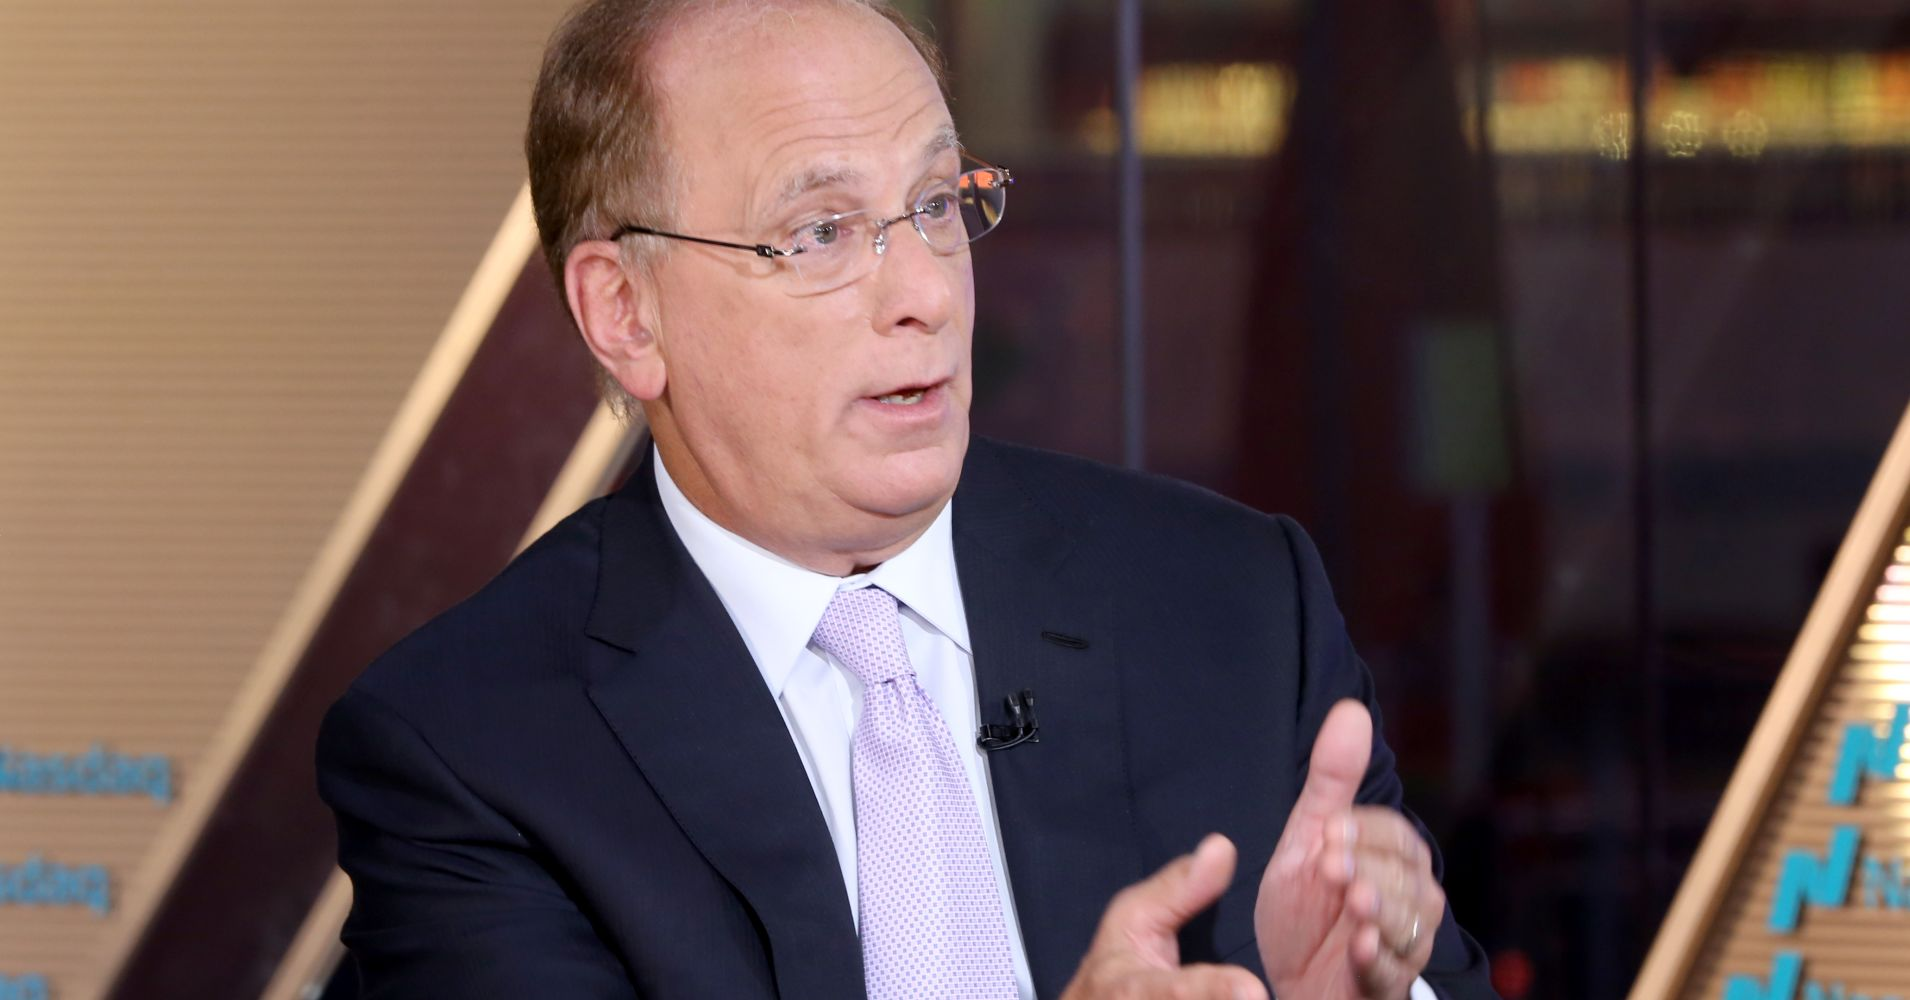 BlackRock's Larry Fink says there are no signs of global recession in the next 12 months